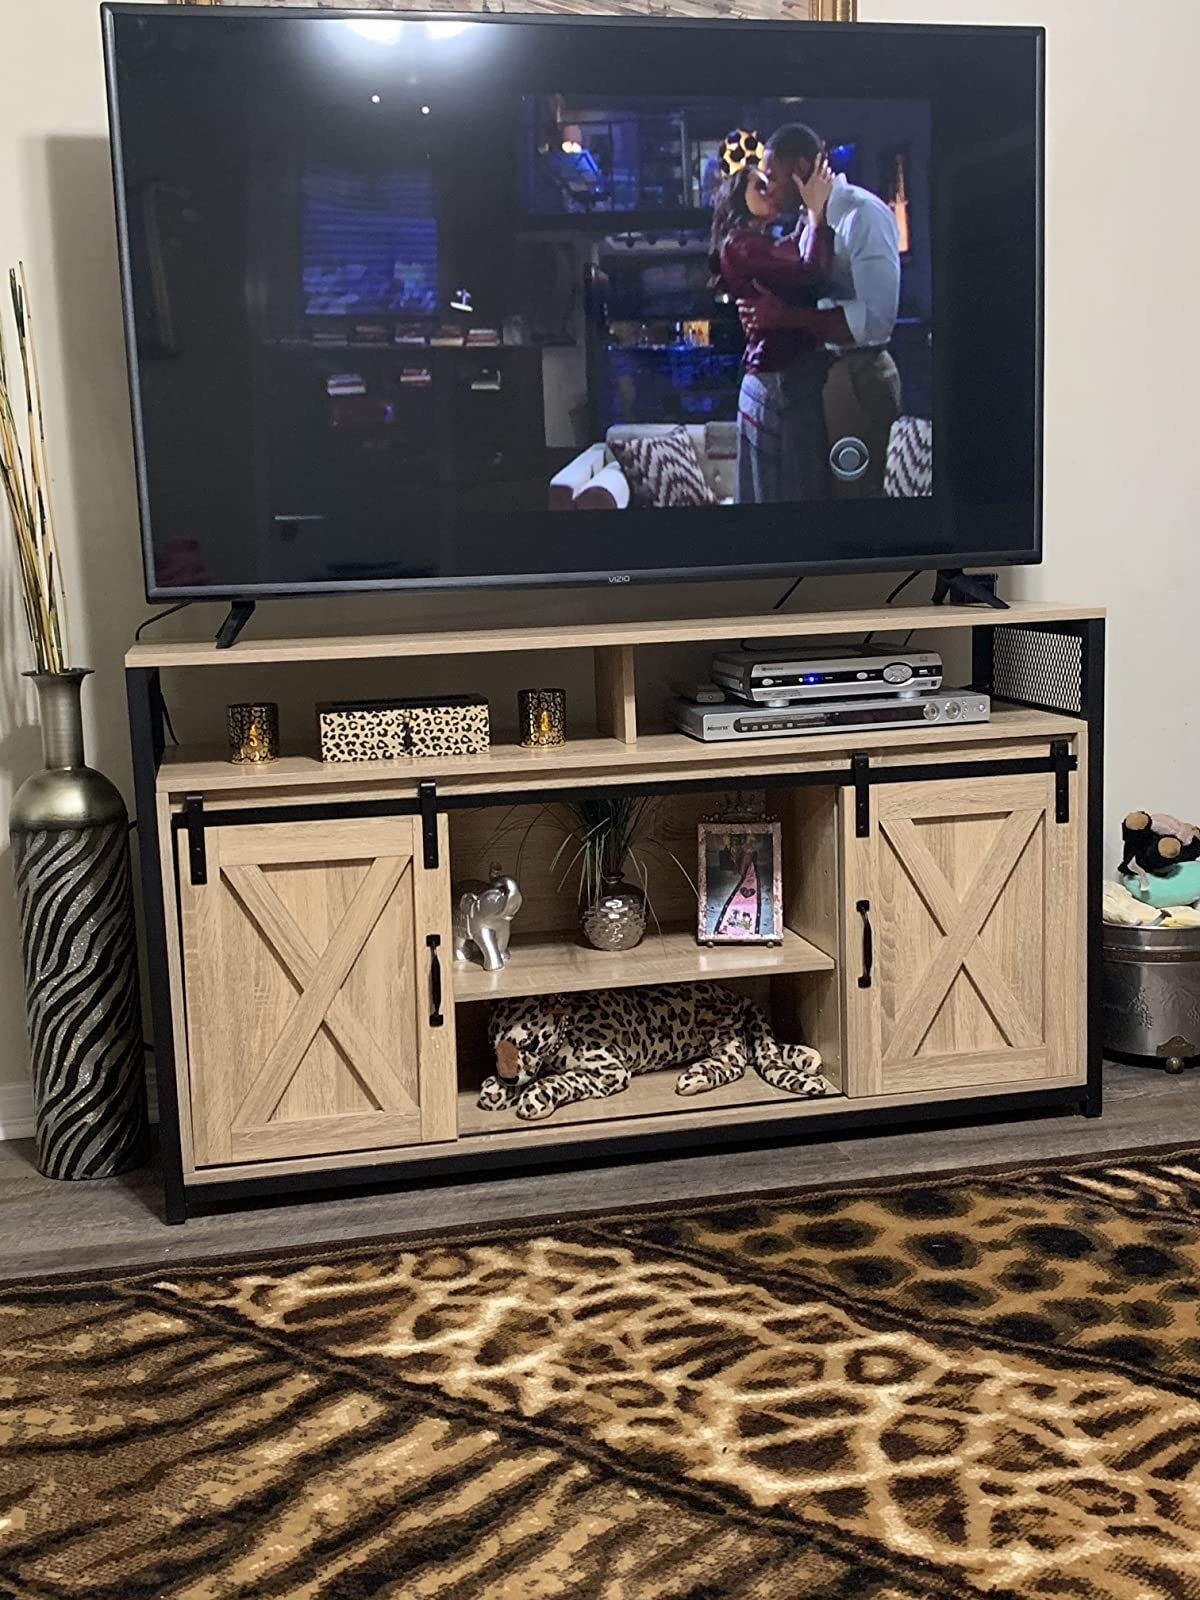 The TV stand supporting a TV with two open shelves and sliding barn doors on either side